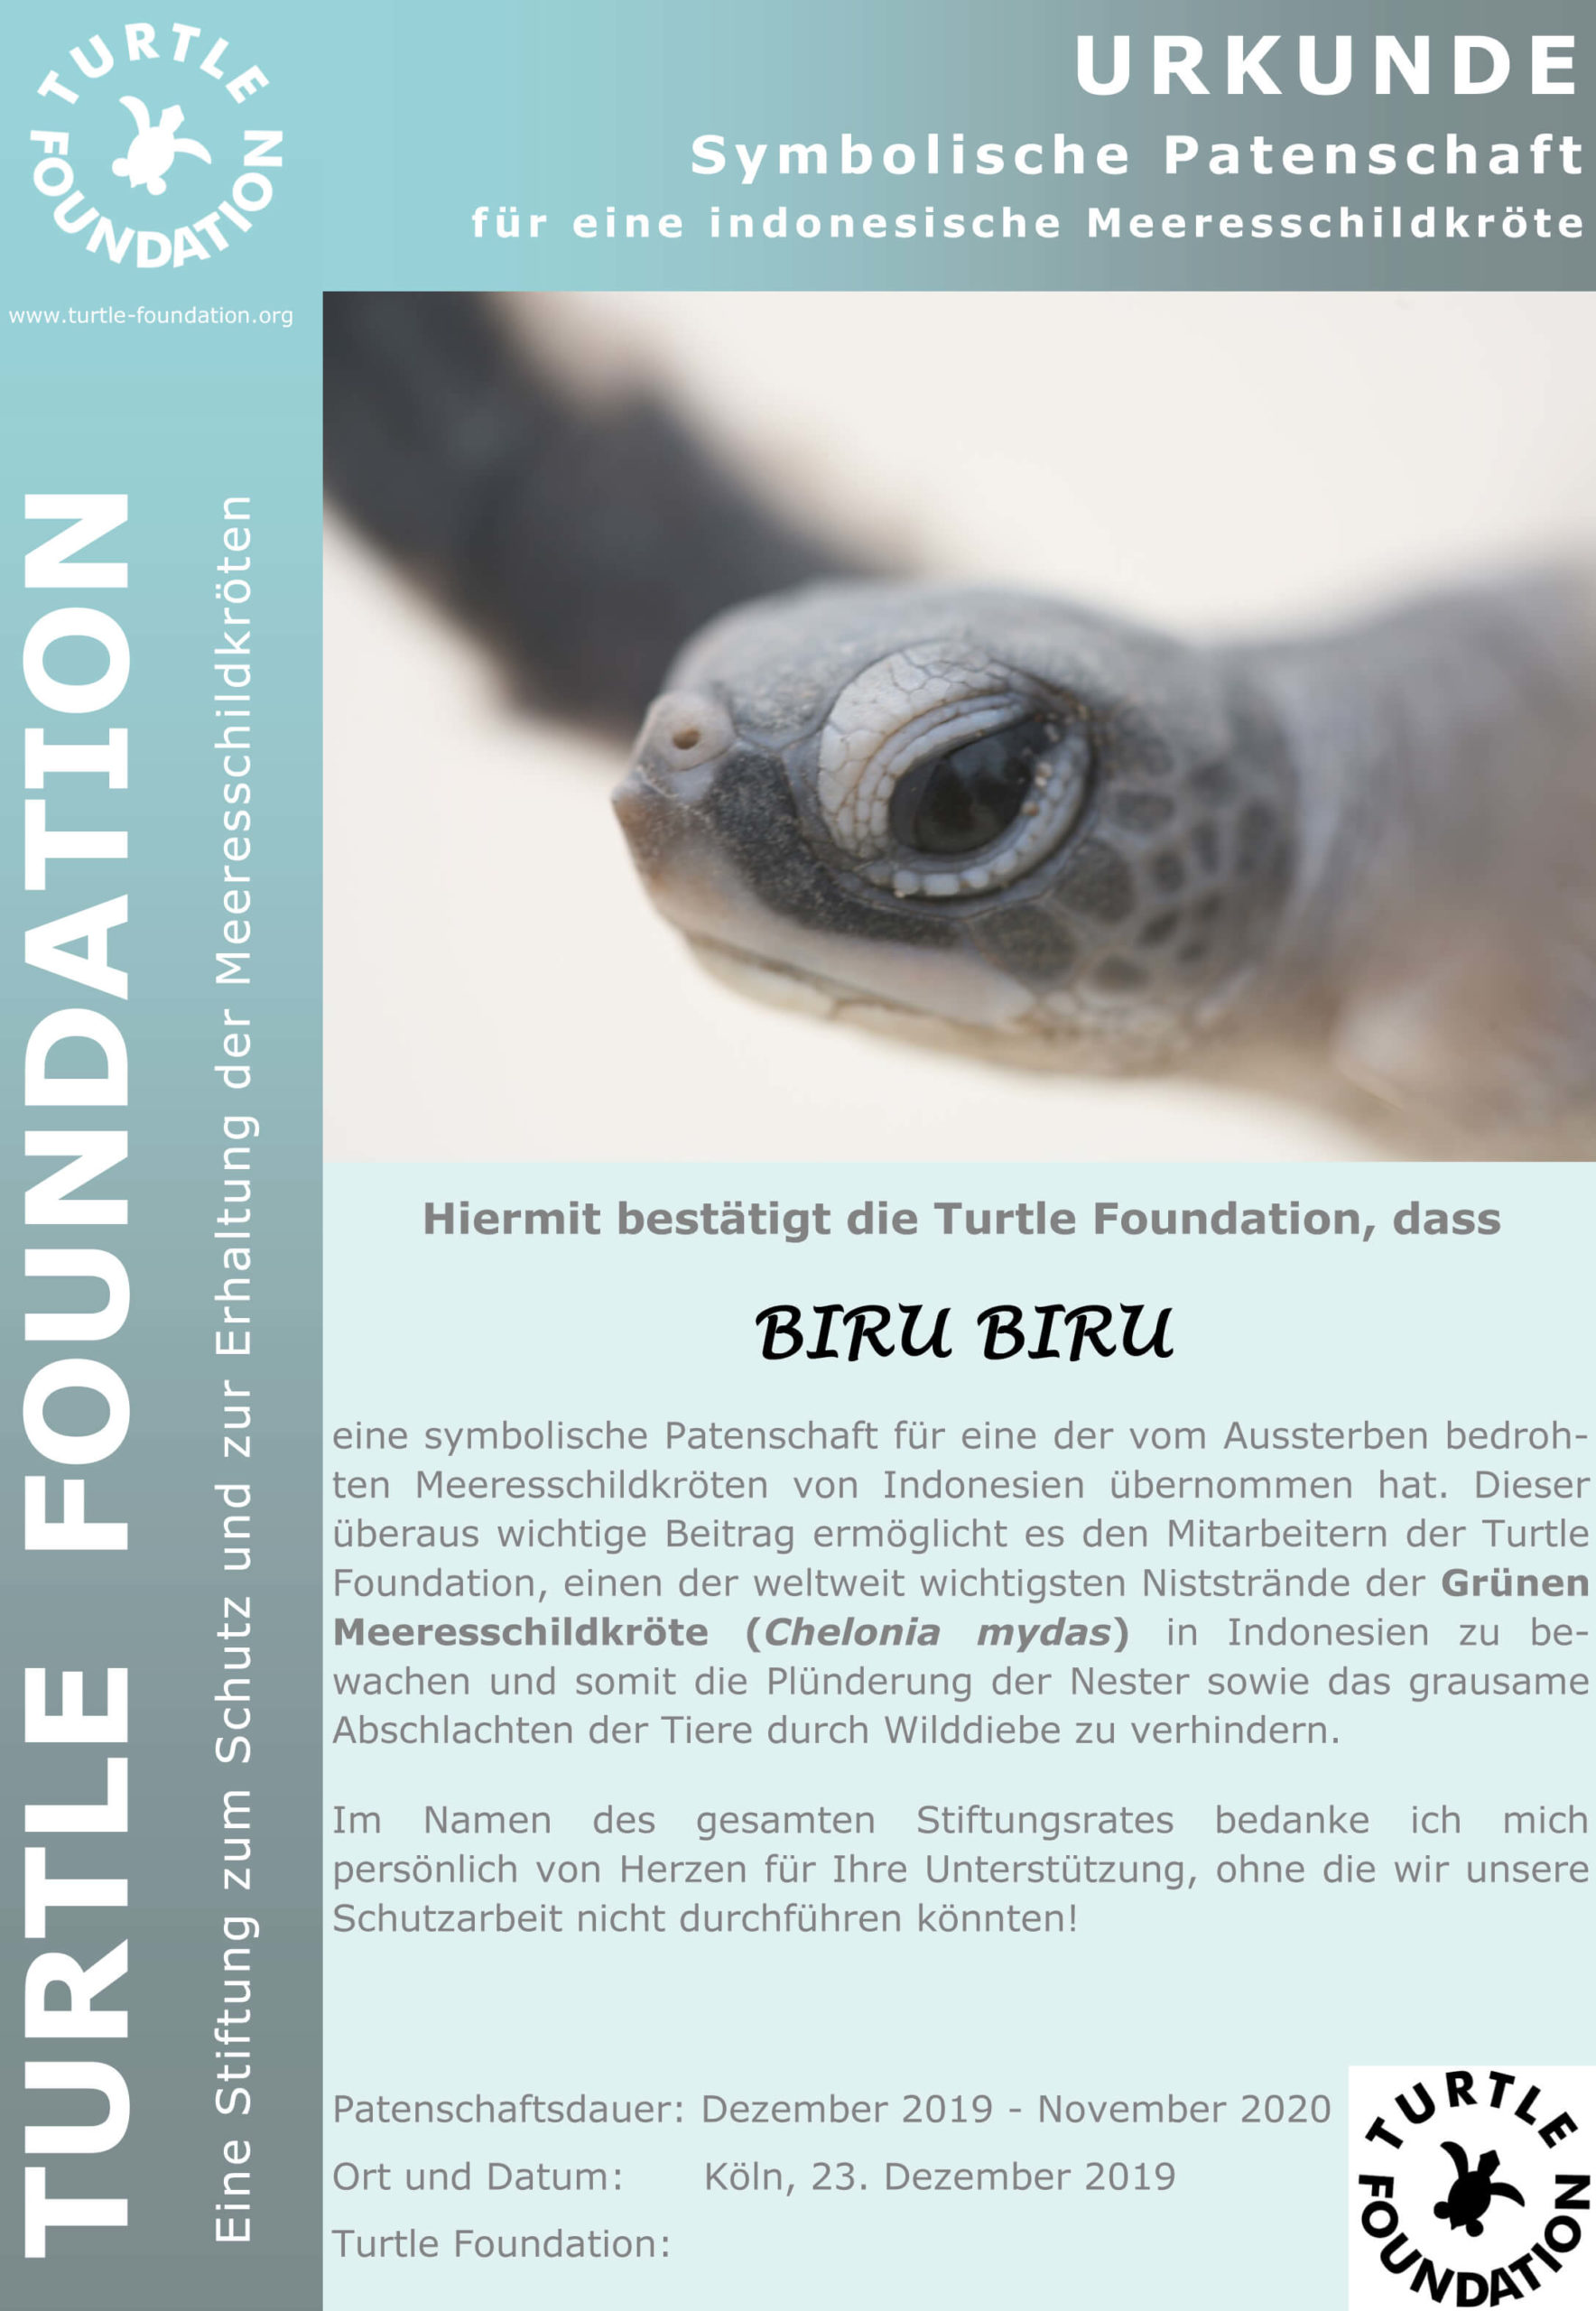 Turtle Foundation BIRU BIRU Patenschaft Schildkroete